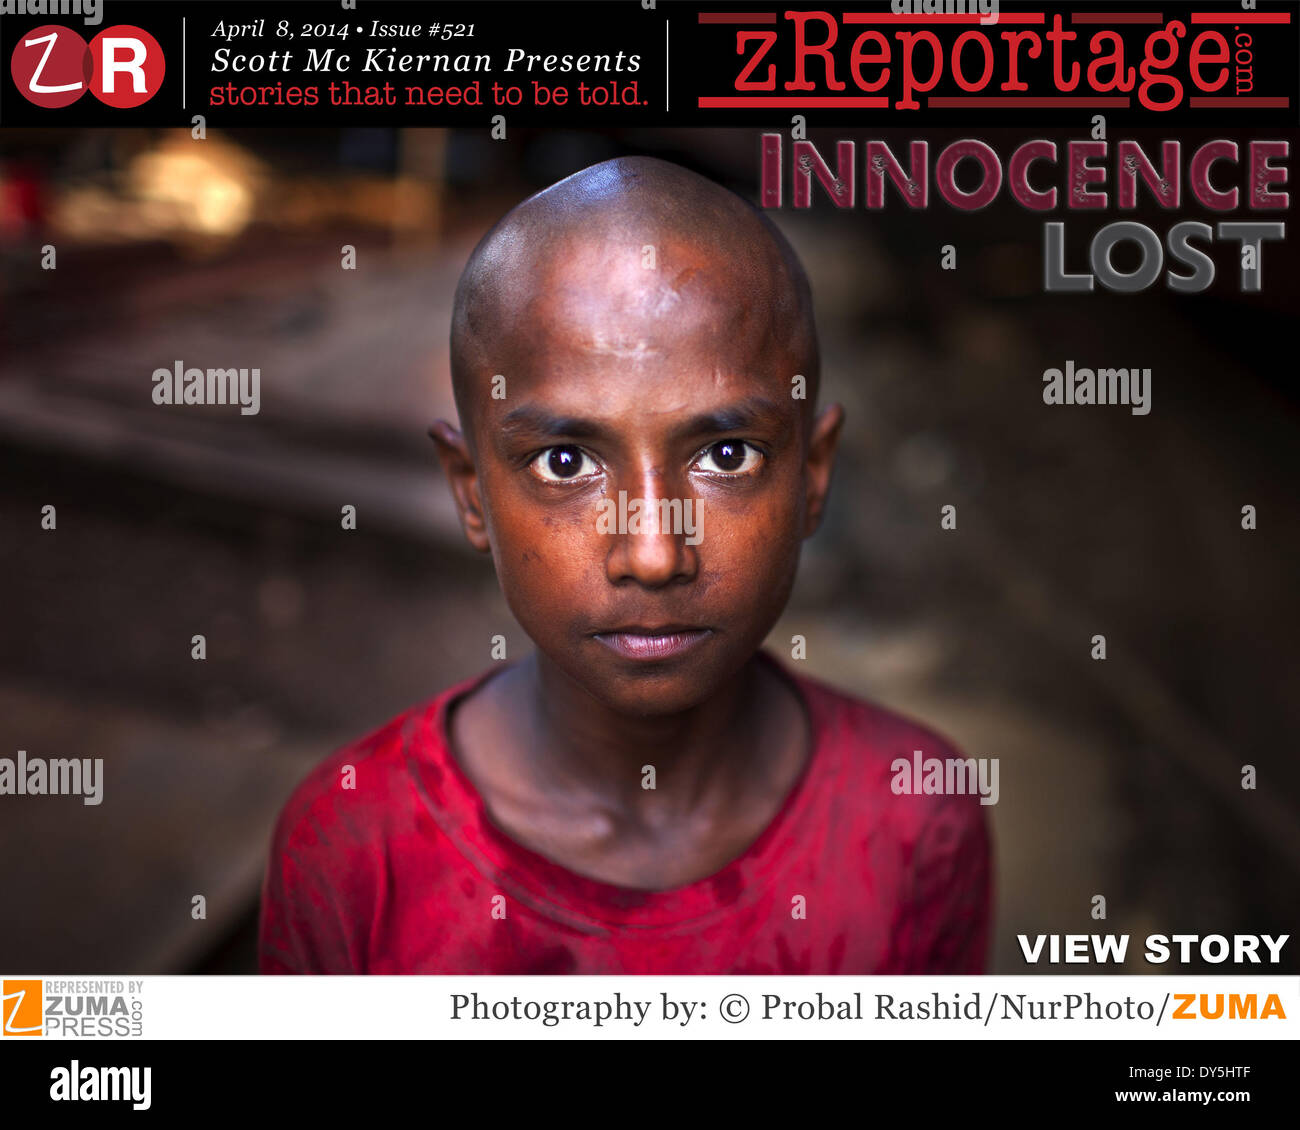 zReportage.com Story of the Week # 521 - Innocence Lost - Launched April 8, 2014 - Full multimedia experience: audio, stills, text and or video: Go to zReportage.com to see more - According to the Labour Laws of Bangladesh, the minimum legal age for employment is 14. However, as 93 per cent of child laborers work in small factories and workshops, and on the street - the enforcement of labour laws is virtually impossible. Poverty causes families to send children to work, often in hazardous and low-wage jobs, such as brick-chipping, construction and refuse collecting. Children are paid less than - Stock Image